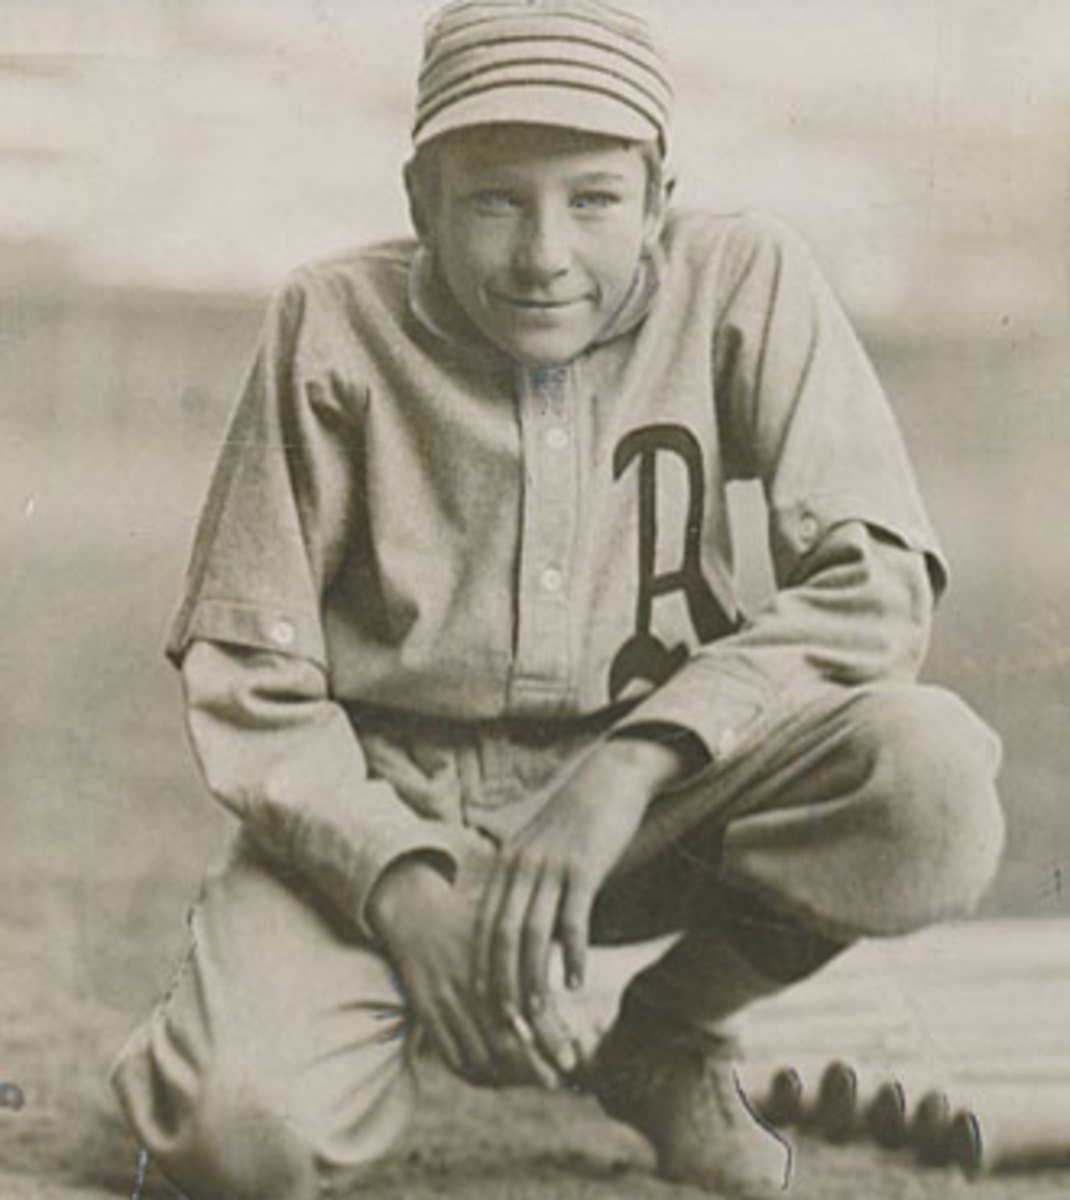 The ill-fated Van Zeist was the A's batboy.